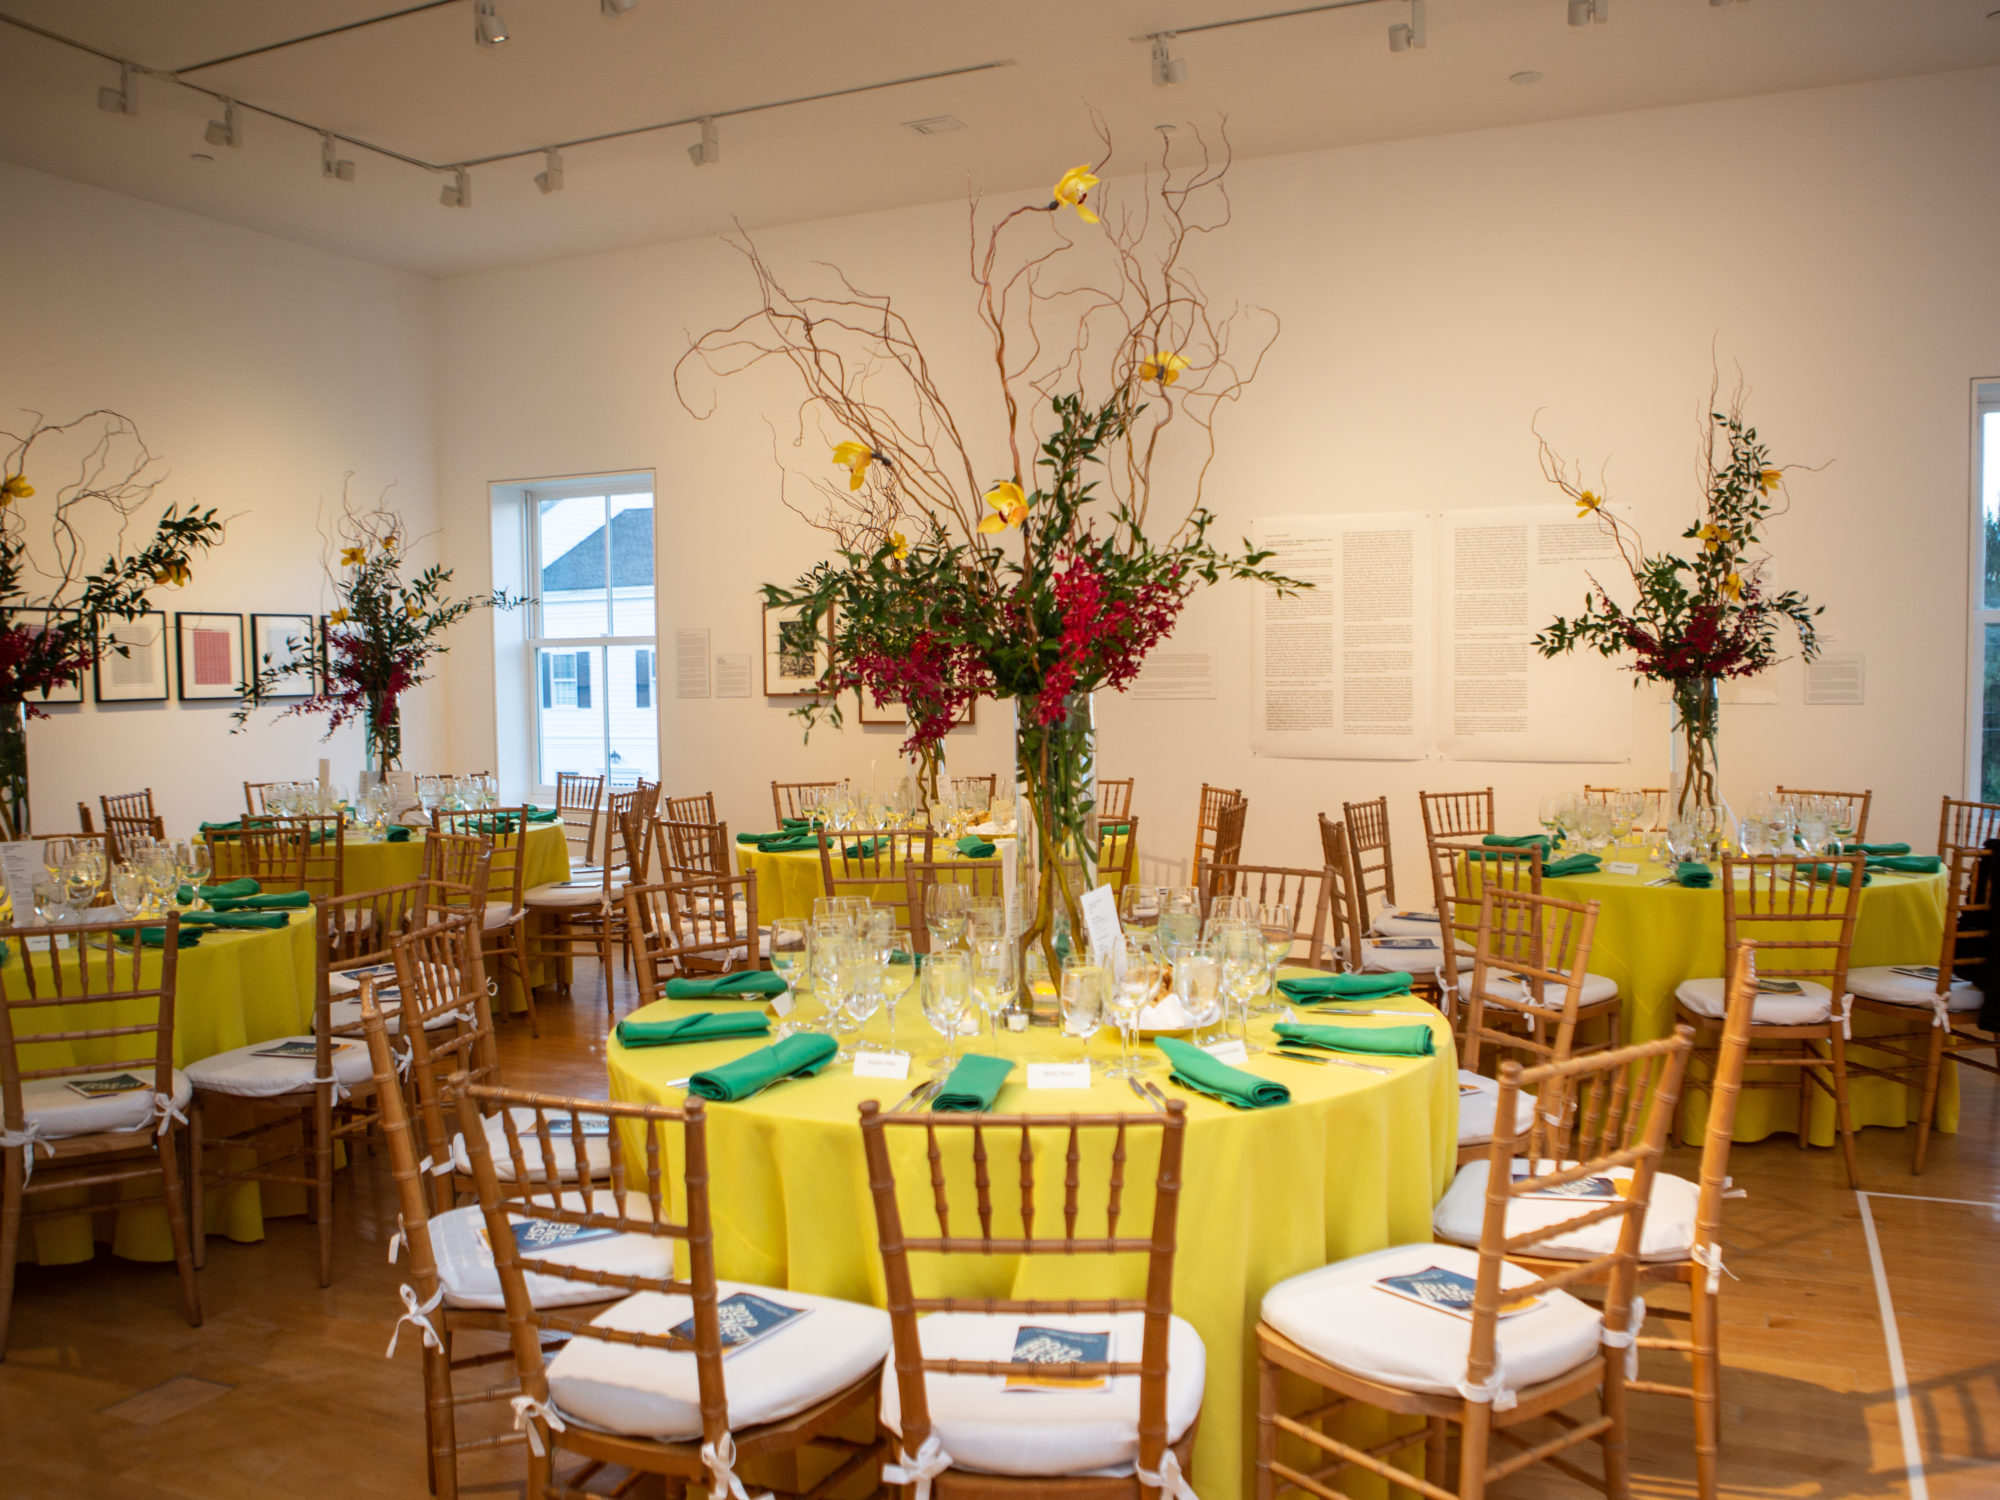 Image of tables with tall flower arrangements in a gallery.